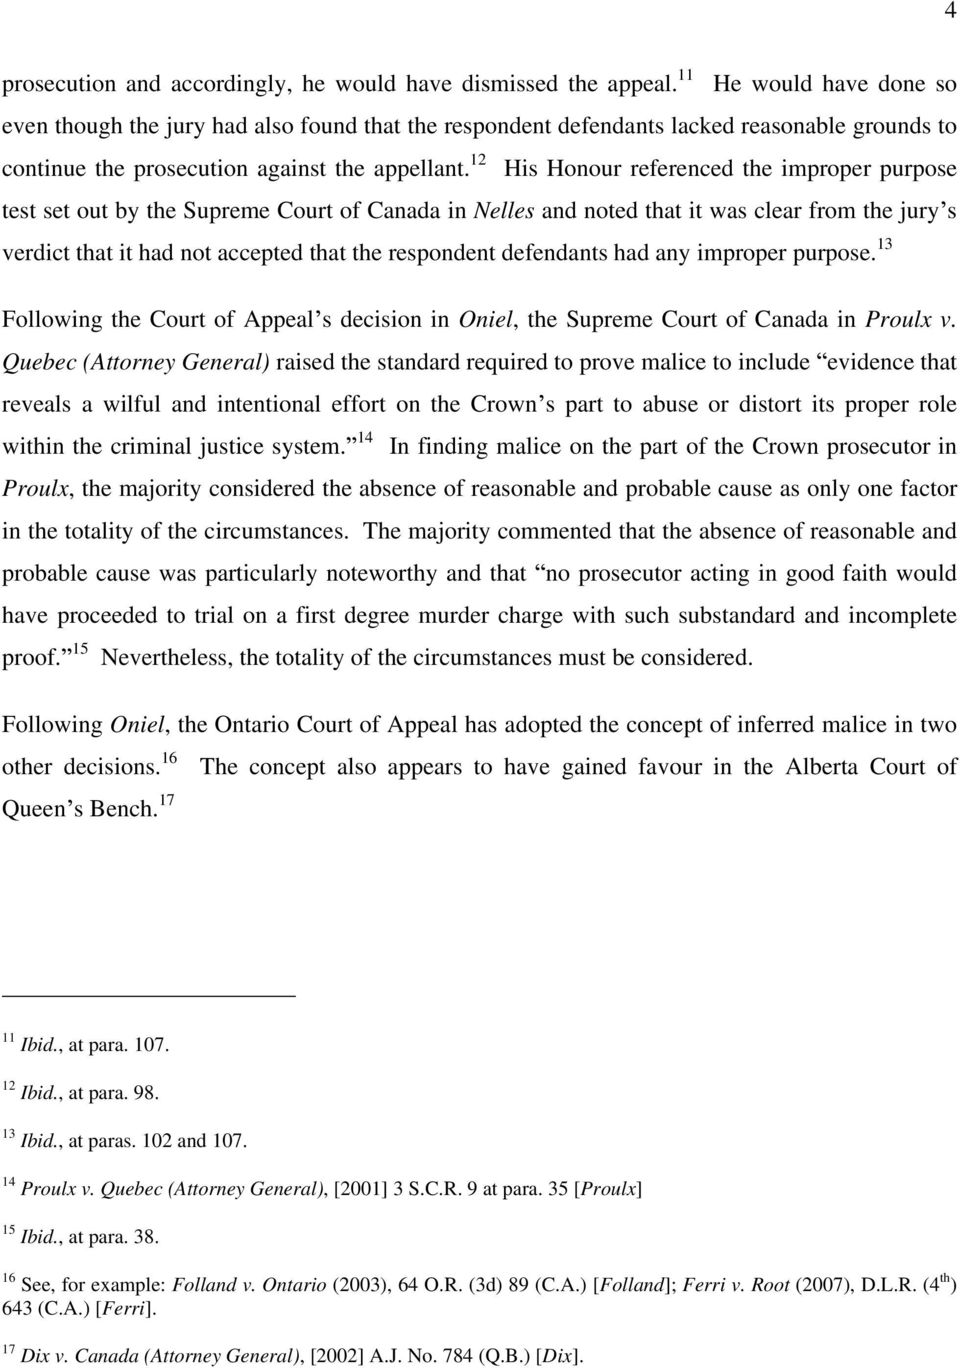 12 His Honour referenced the improper purpose test set out by the Supreme Court of Canada in Nelles and noted that it was clear from the jury s verdict that it had not accepted that the respondent